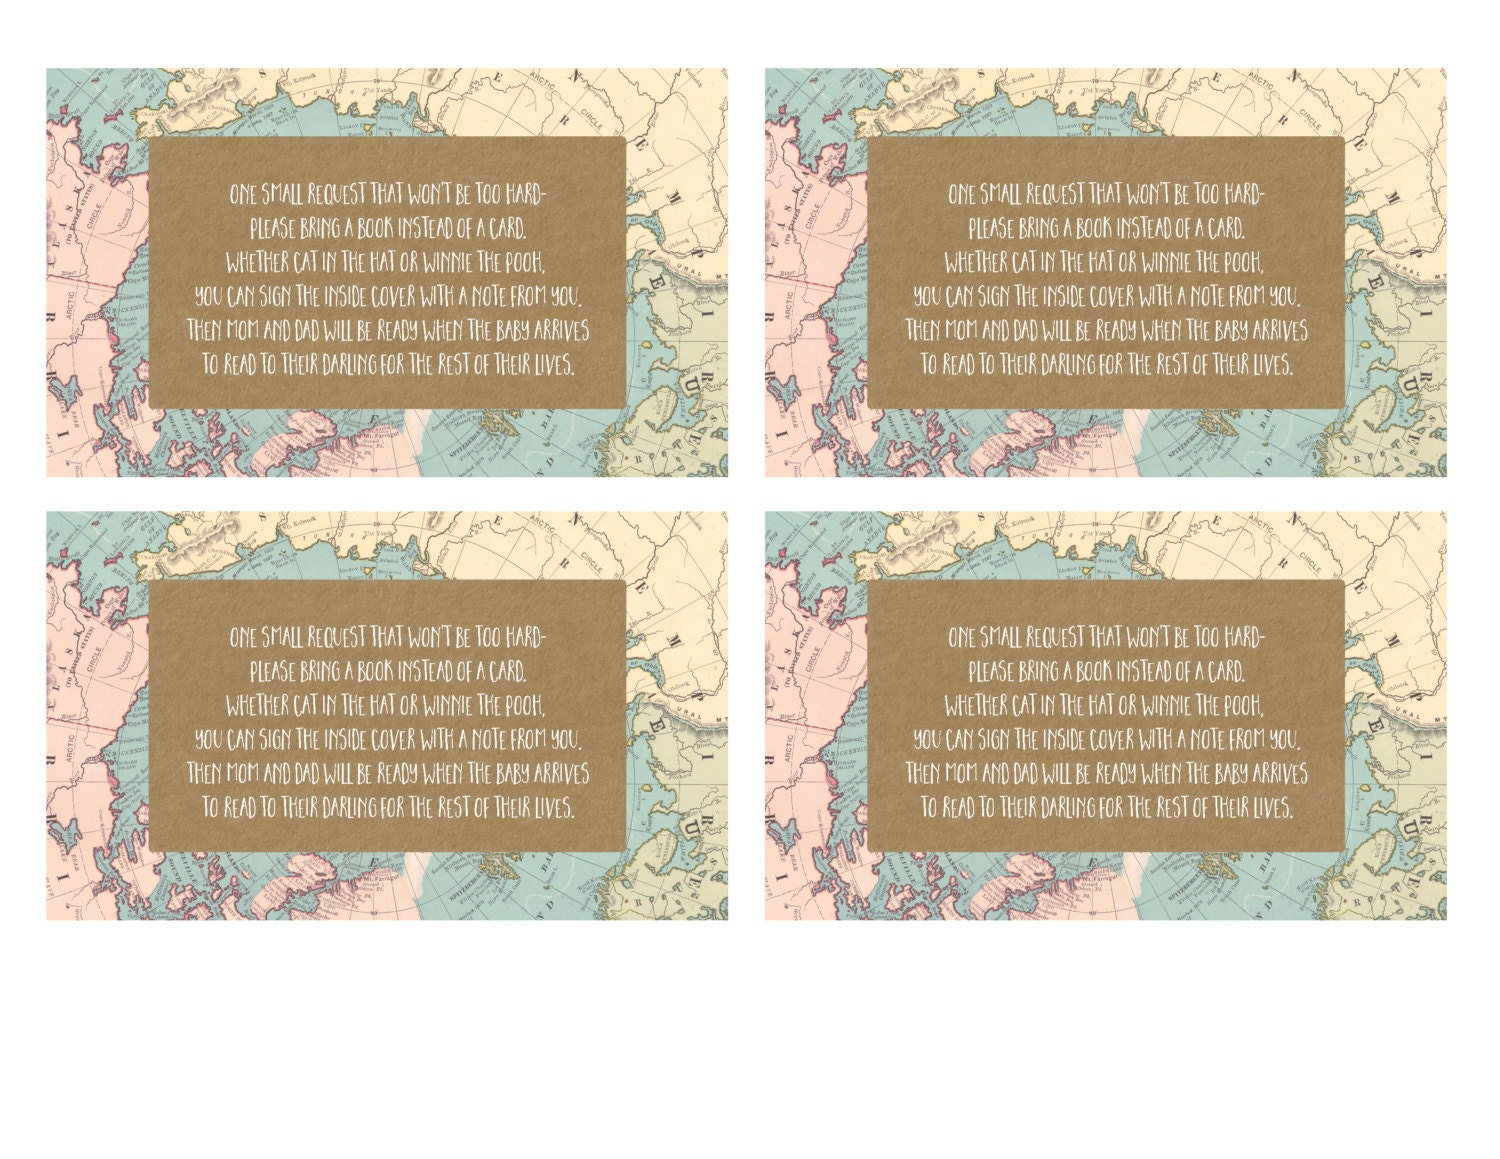 Baby Shower Gift Card - Bring a Book instead of a Card - Baby Shower ...